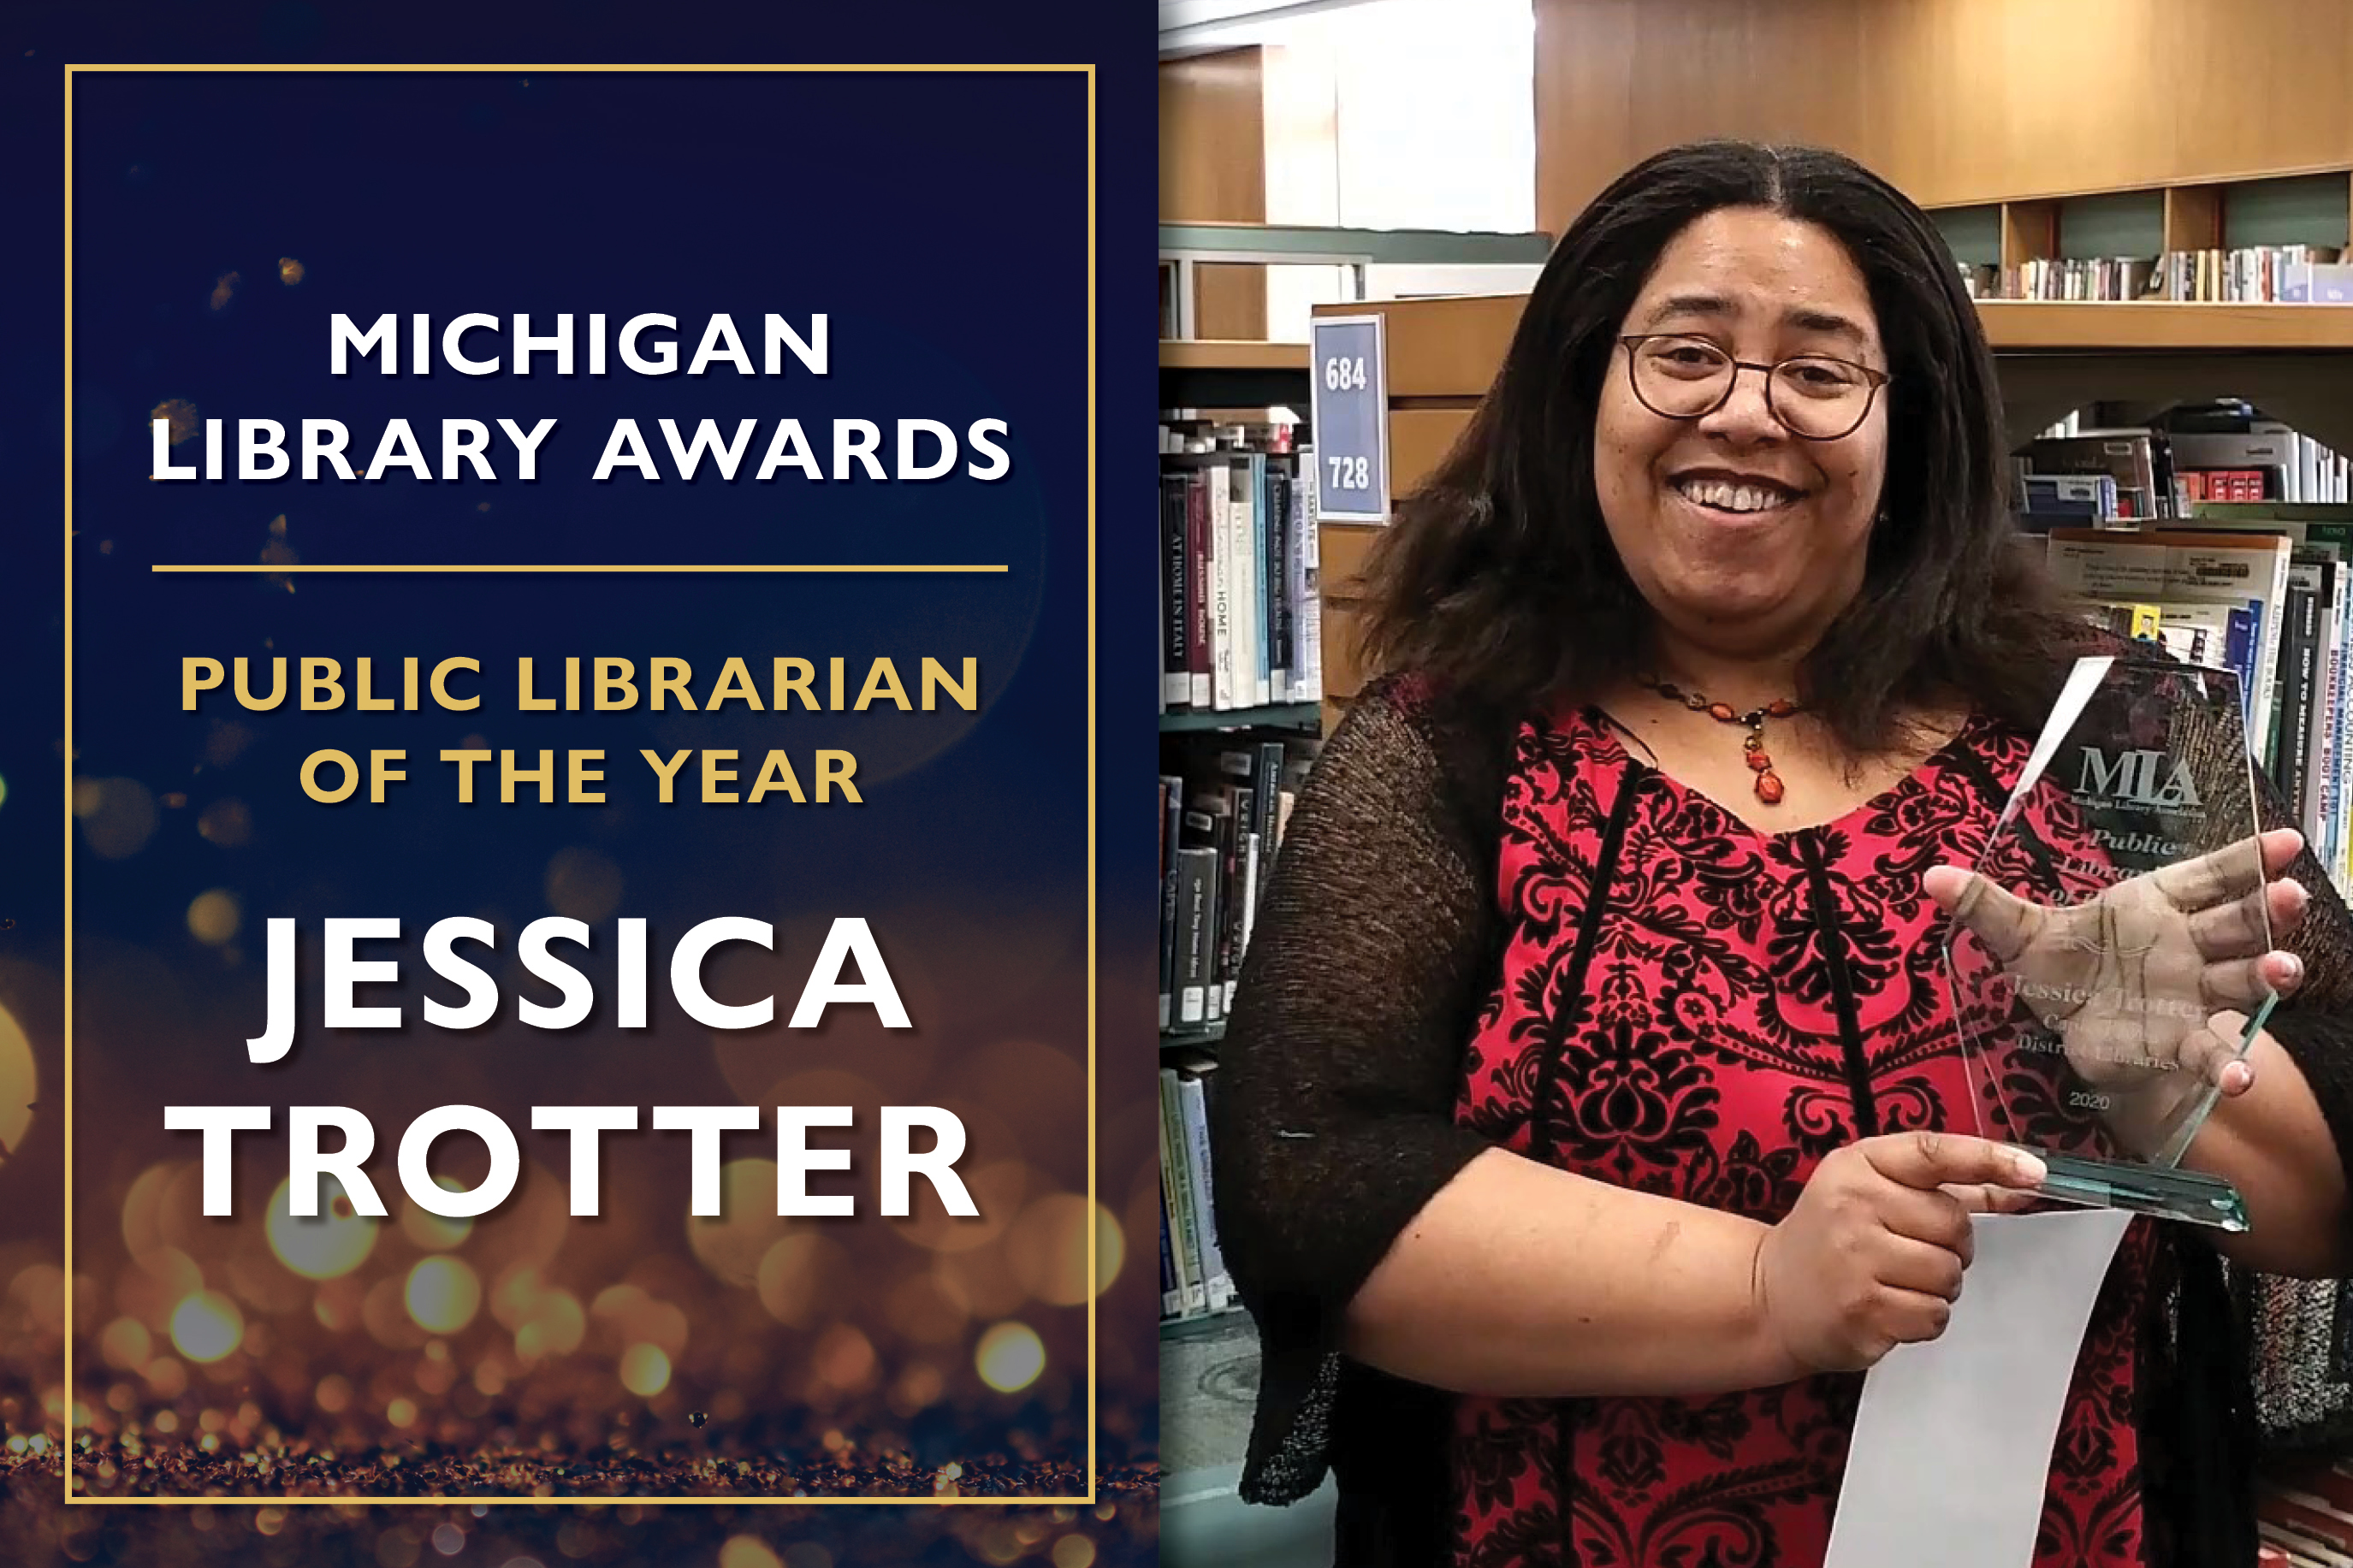 Public Librarian of the Year  Jessica Trotter, Collection Development Specialist at the Capital Area District Libraires